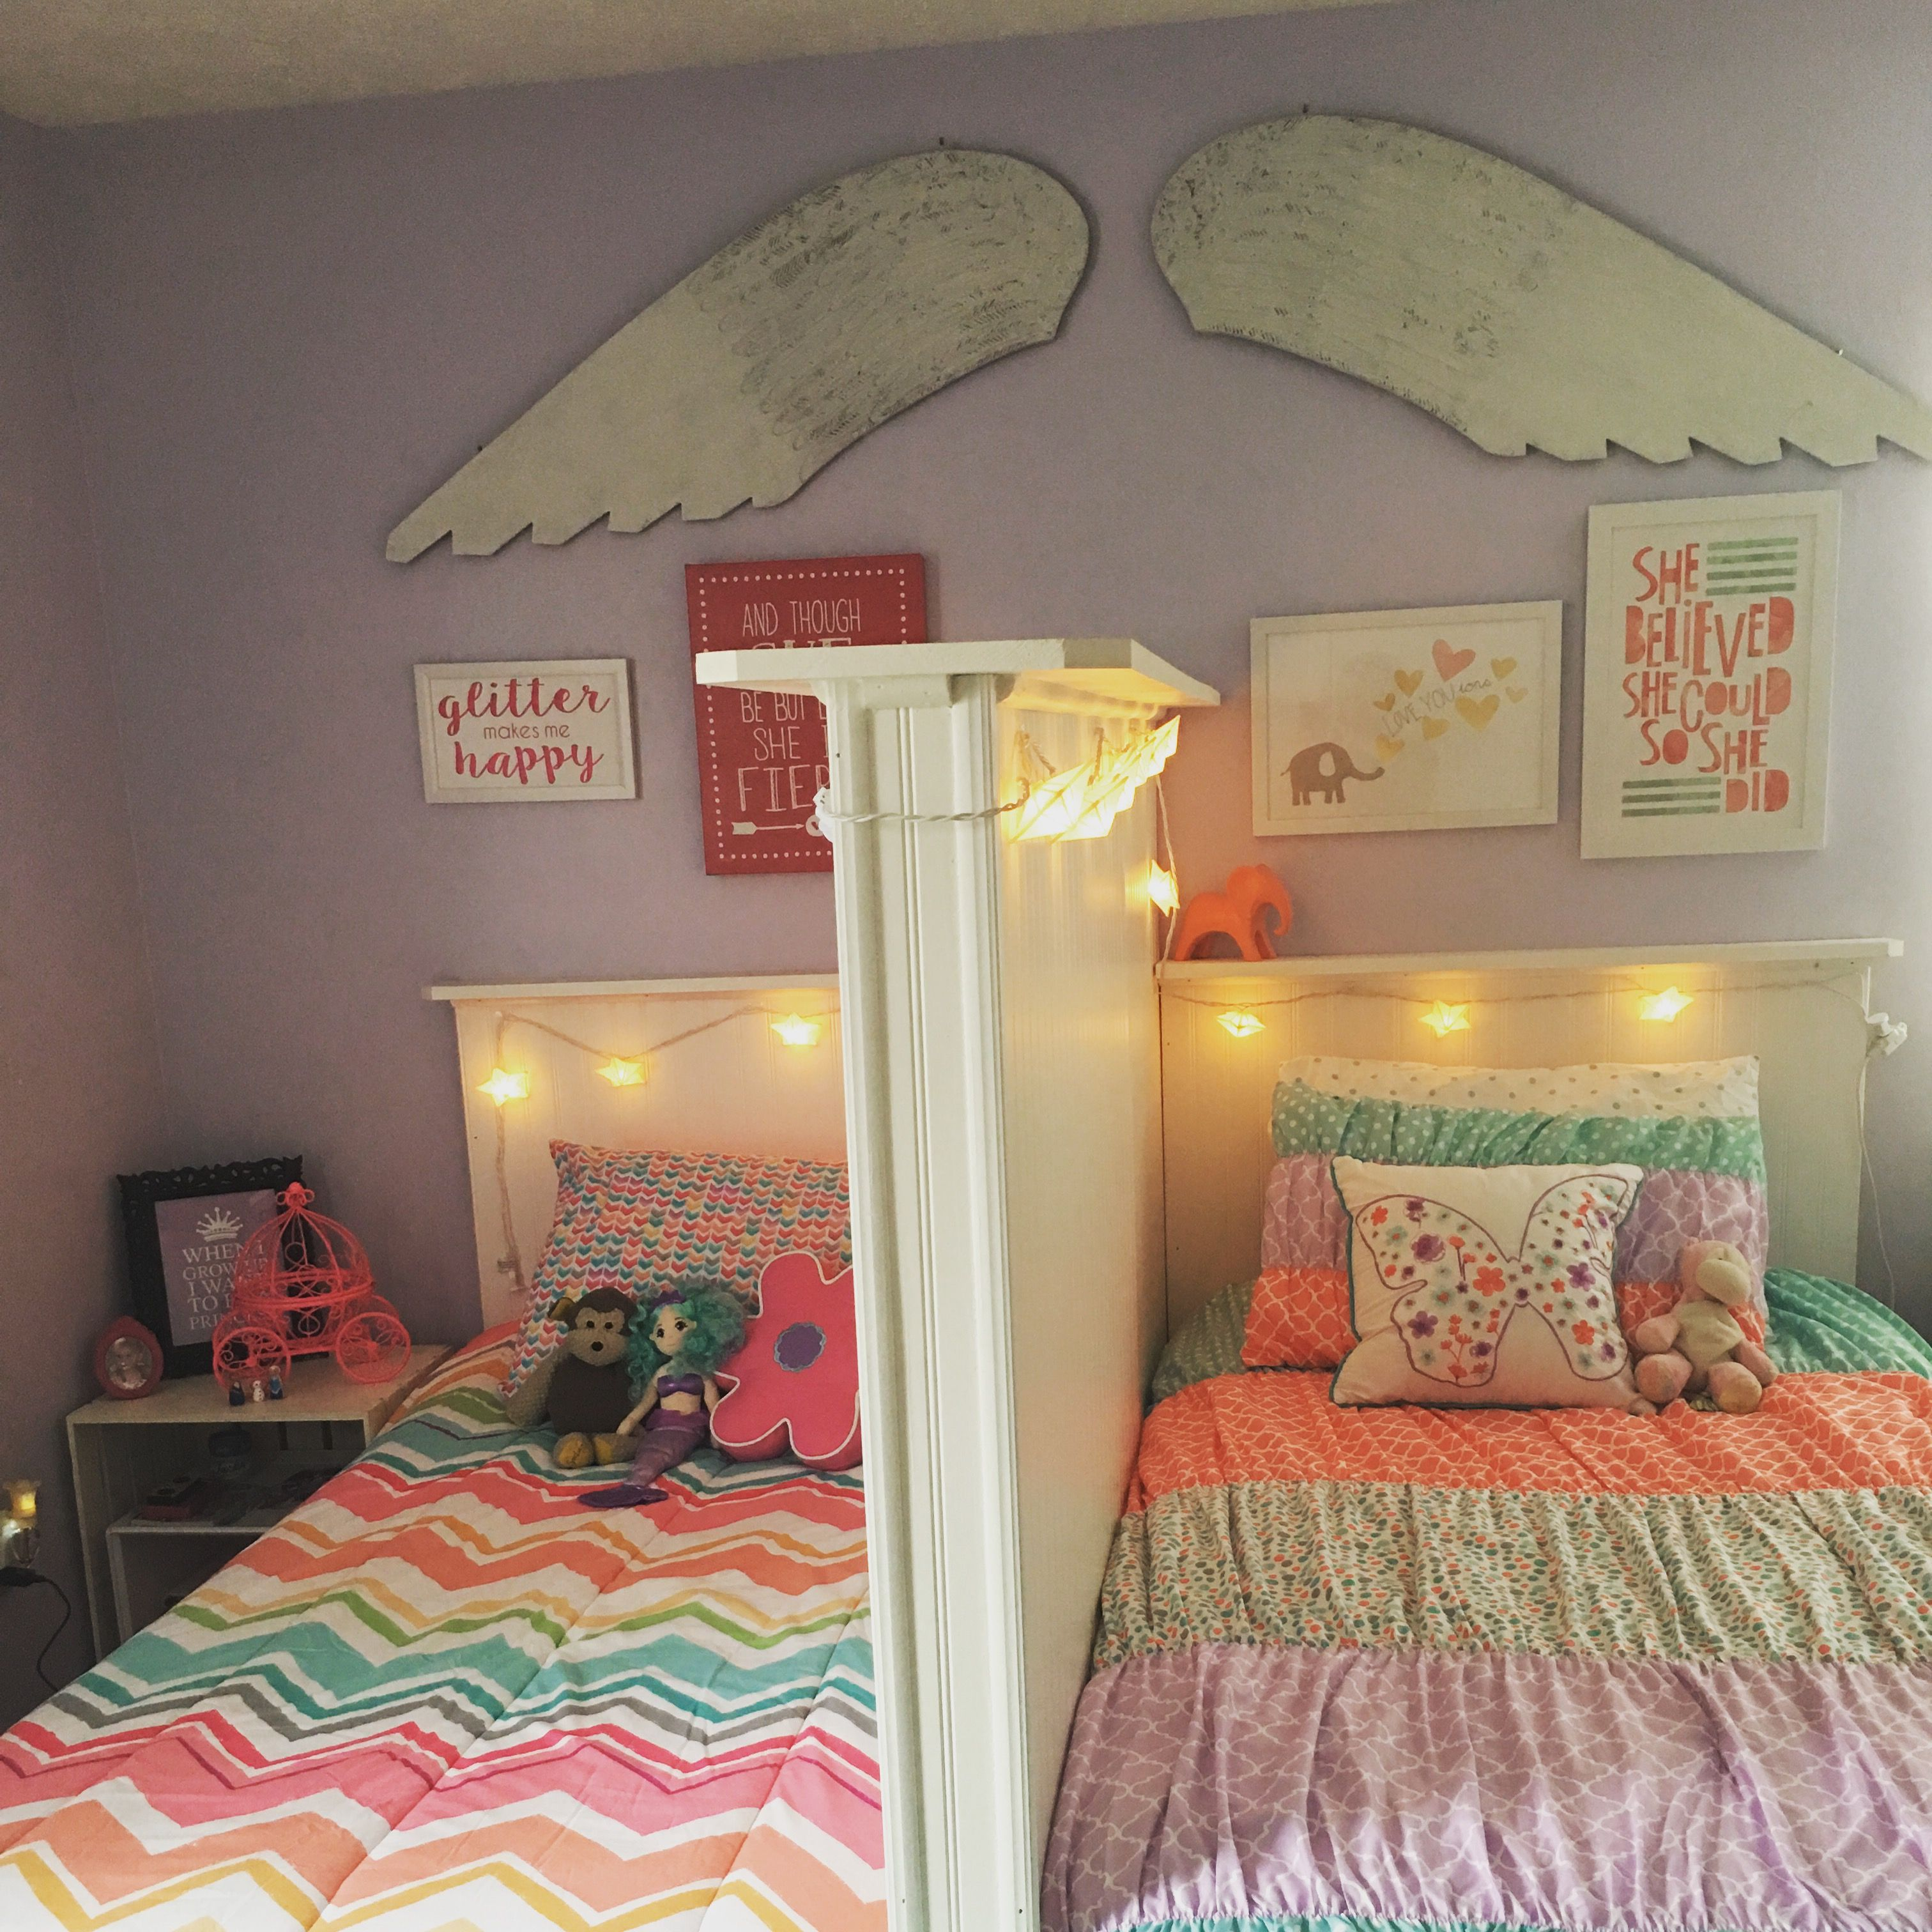 how to transform a bunk bed into twin beds | elpetersondesign diy